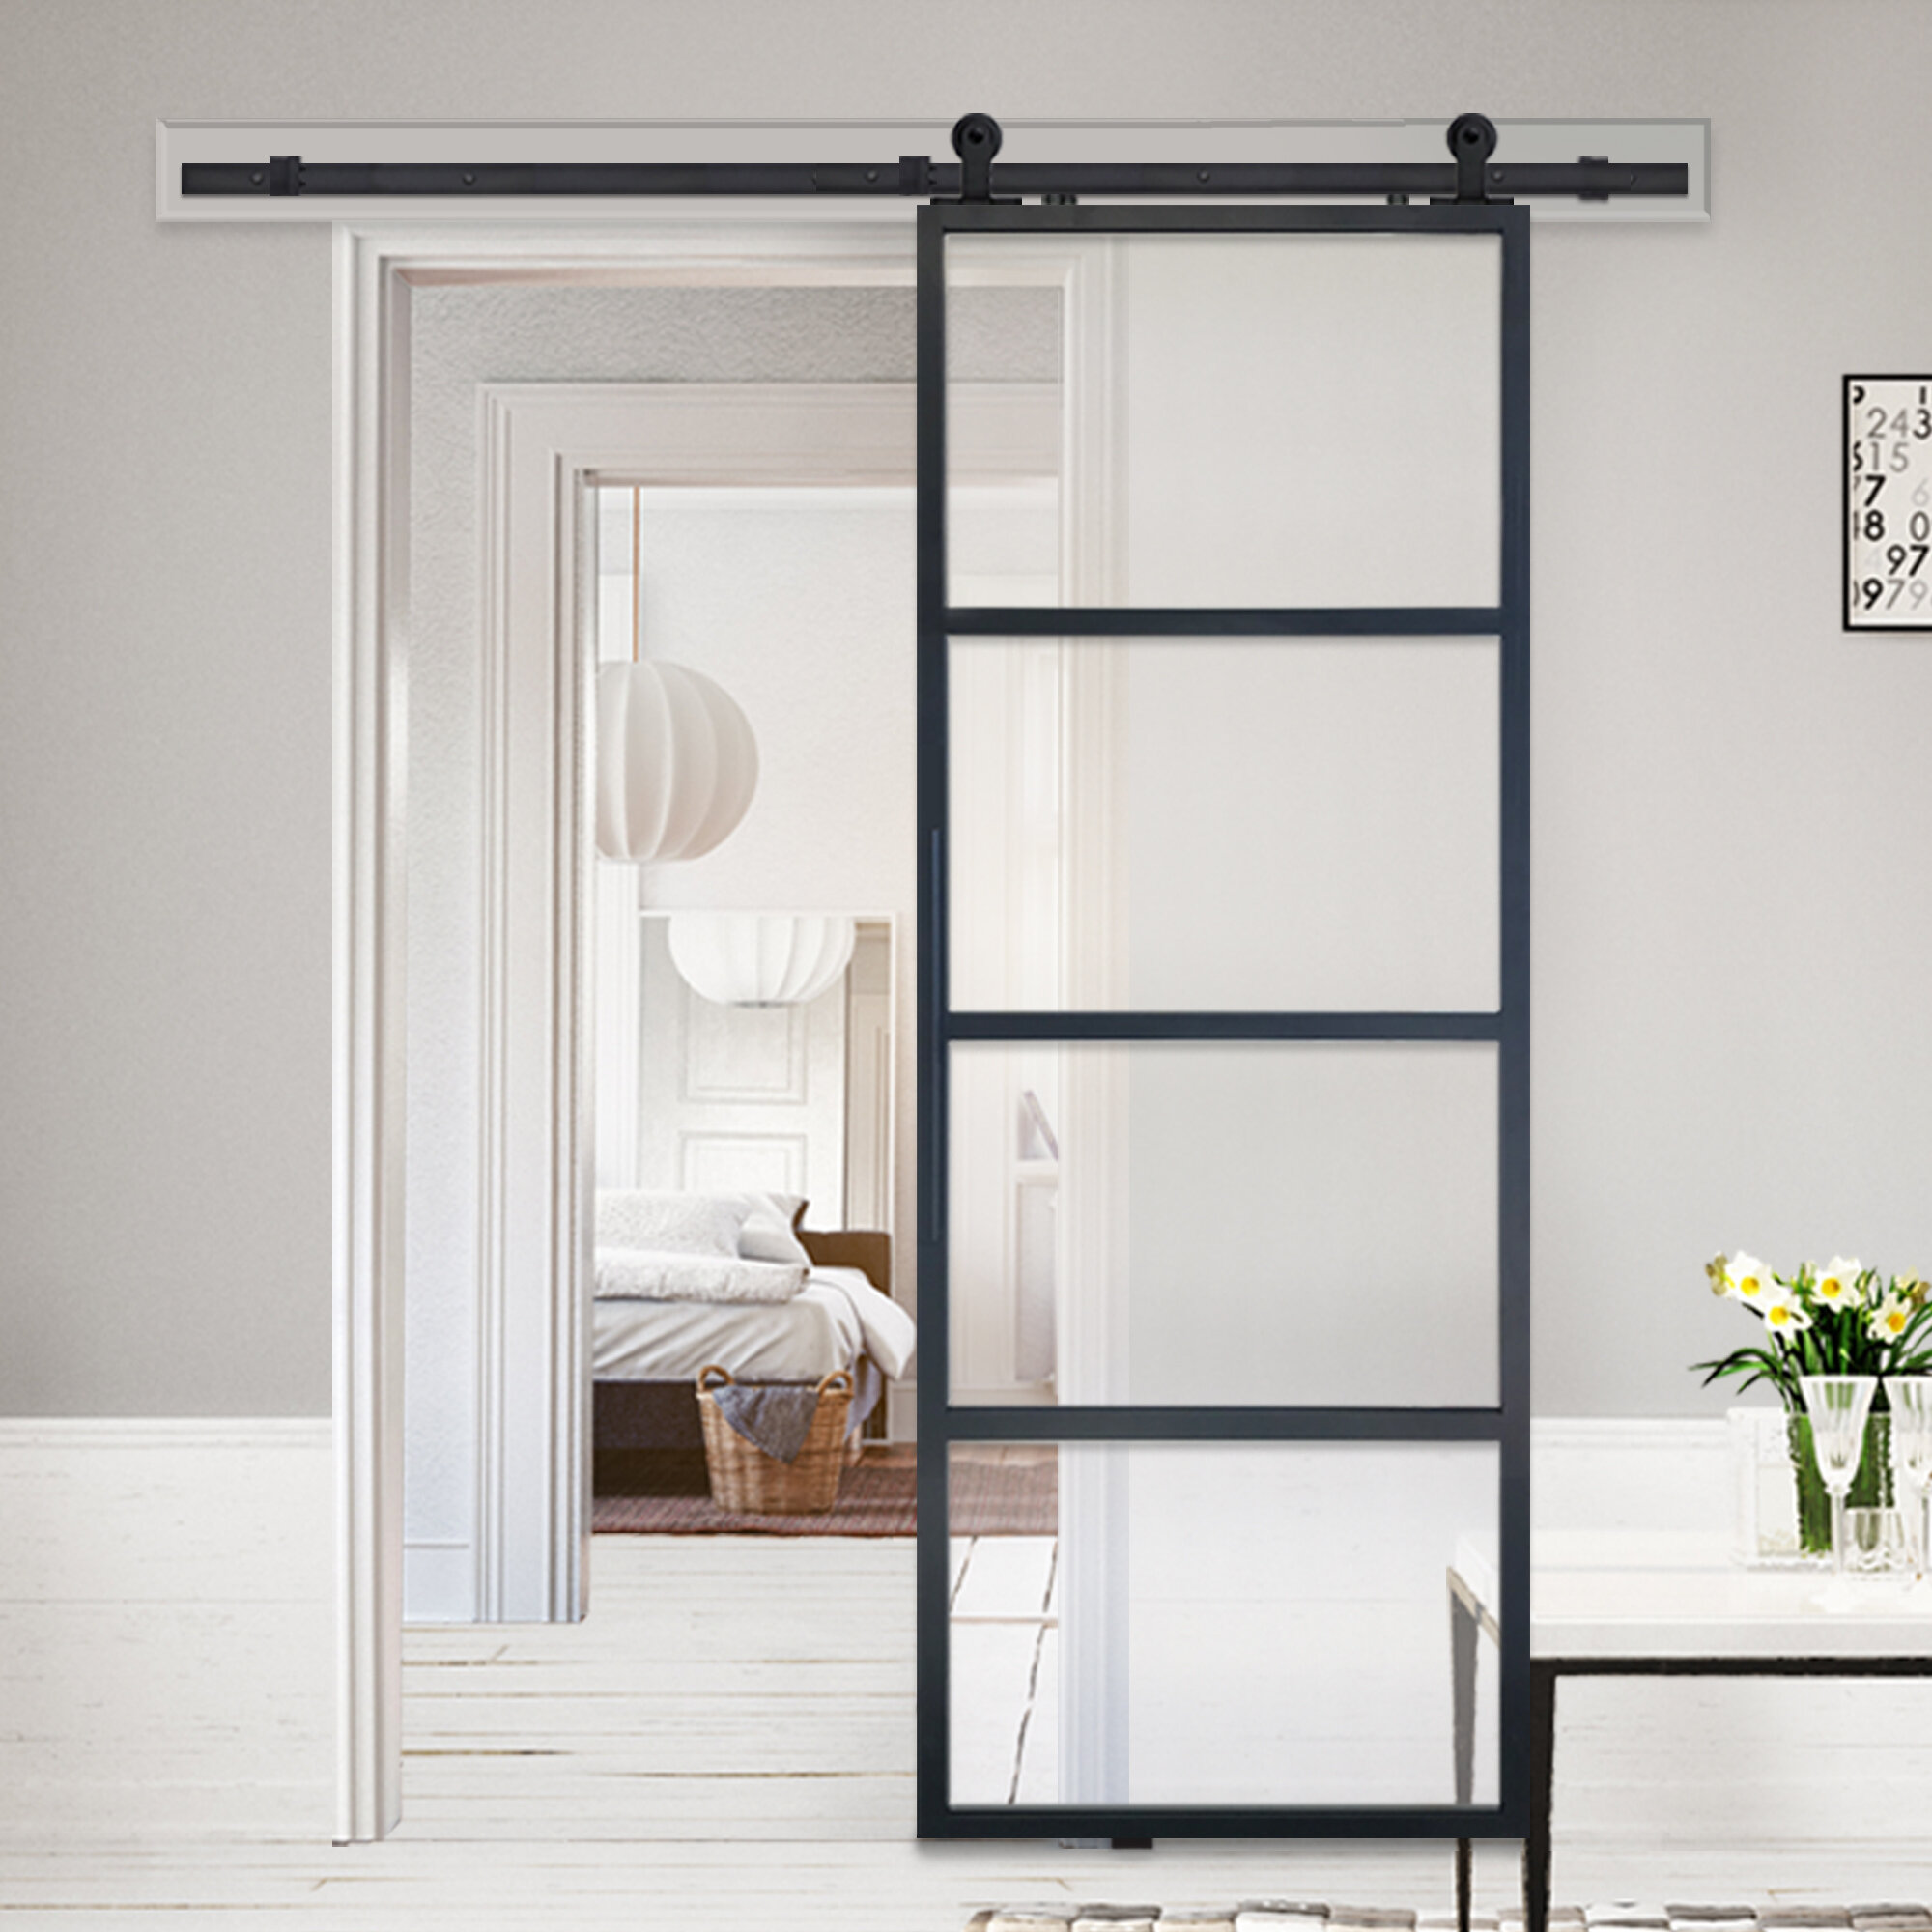 Barndoorz French Glass Barn Door With Installation Hardware Kit